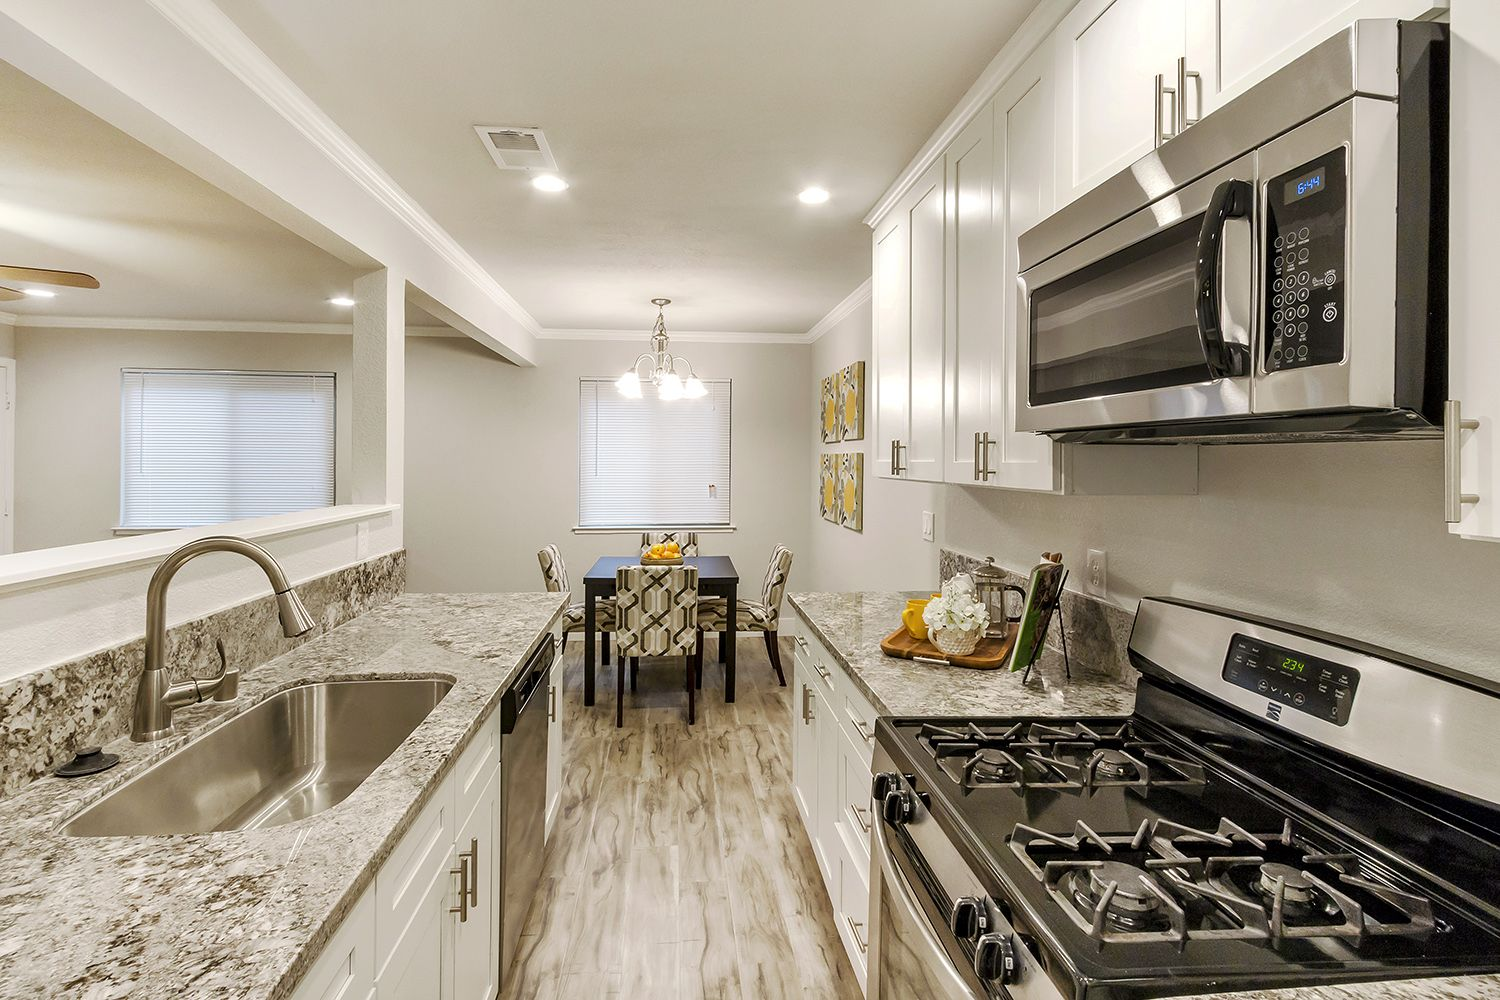 Kitchen renovation at 6253 carlow dr 3 citrus heights